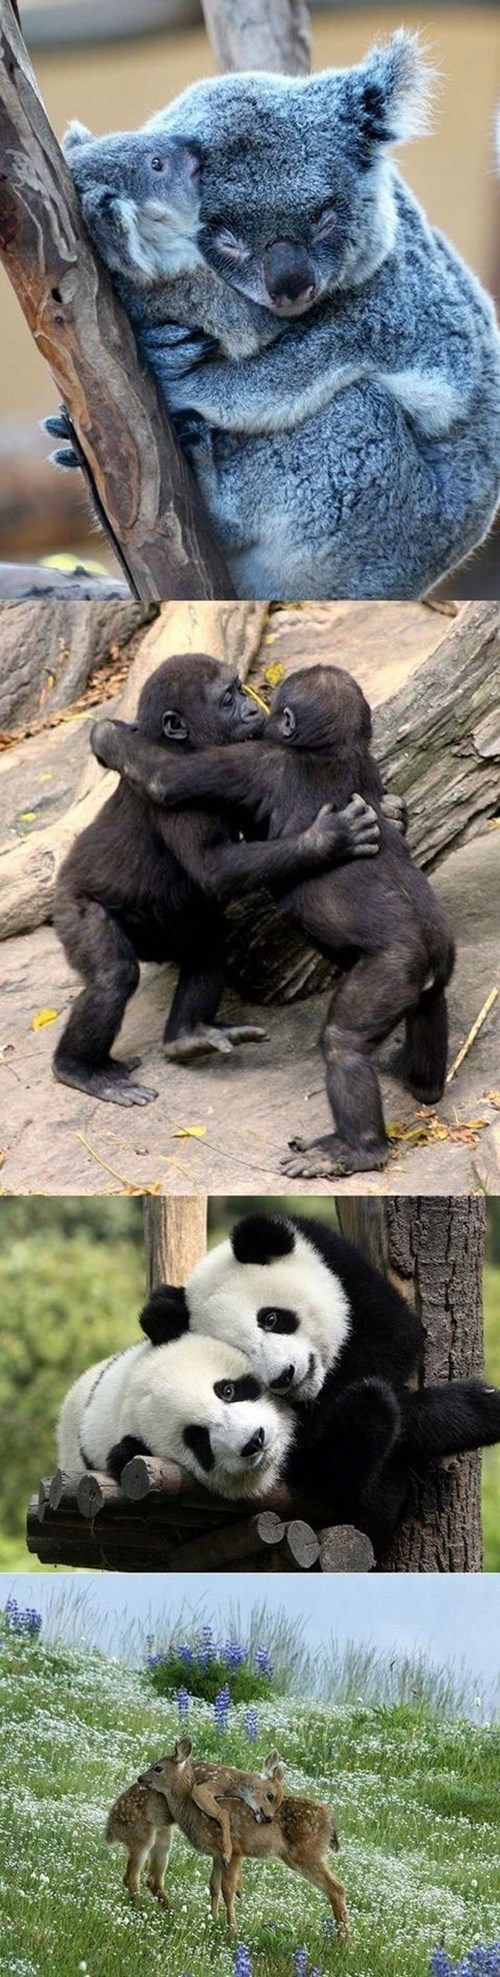 animals,cute,hugging,squee